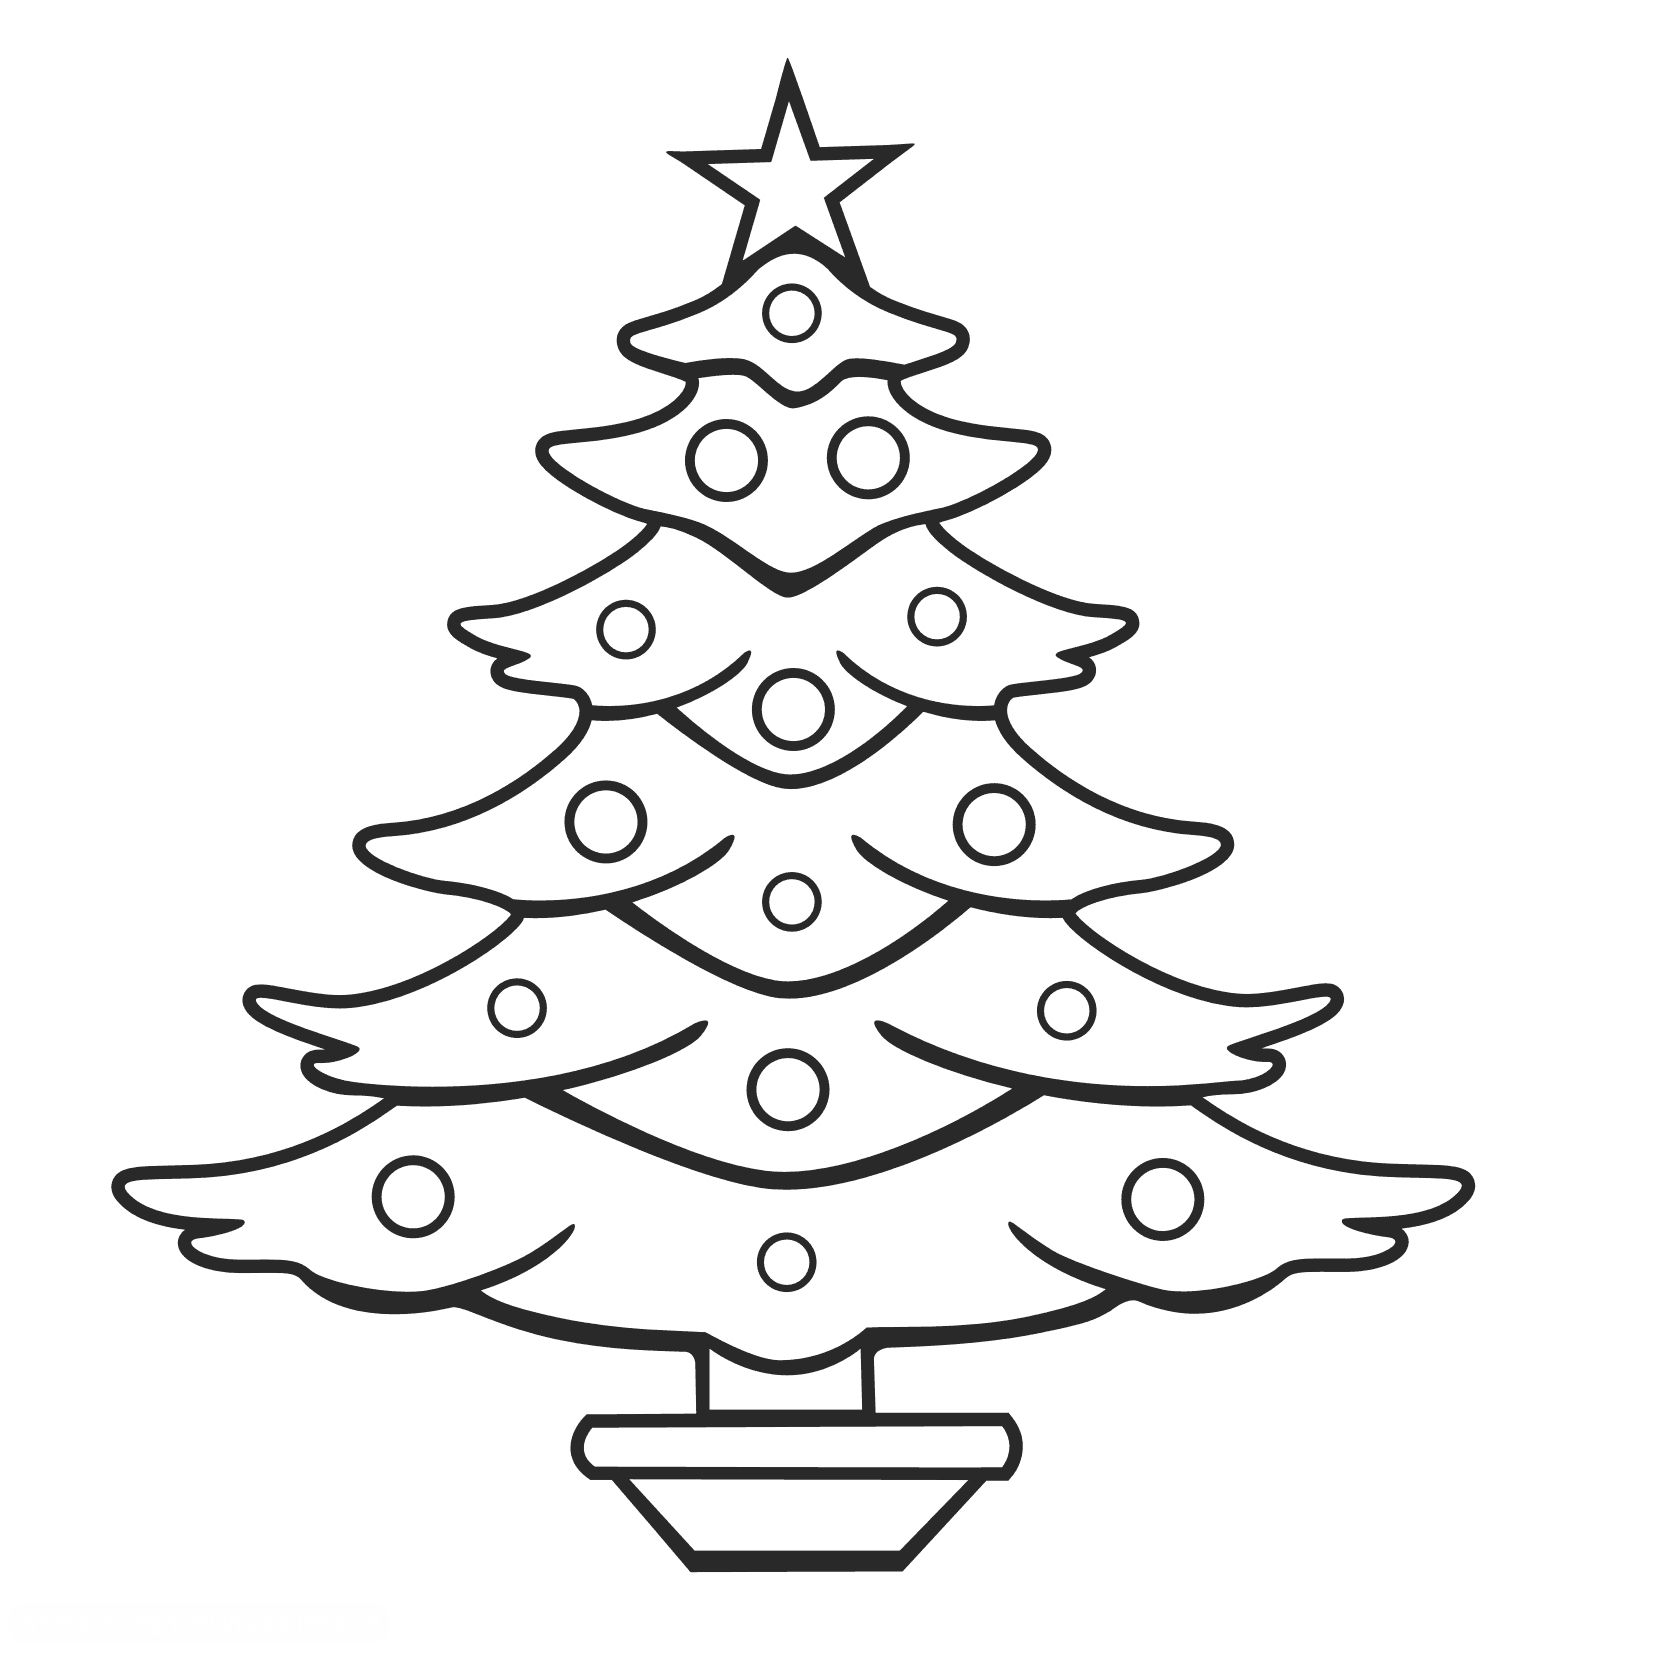 Christmas tree clipart color vector royalty free download cats coloring page christmas tree for printing - Google Search ... vector royalty free download